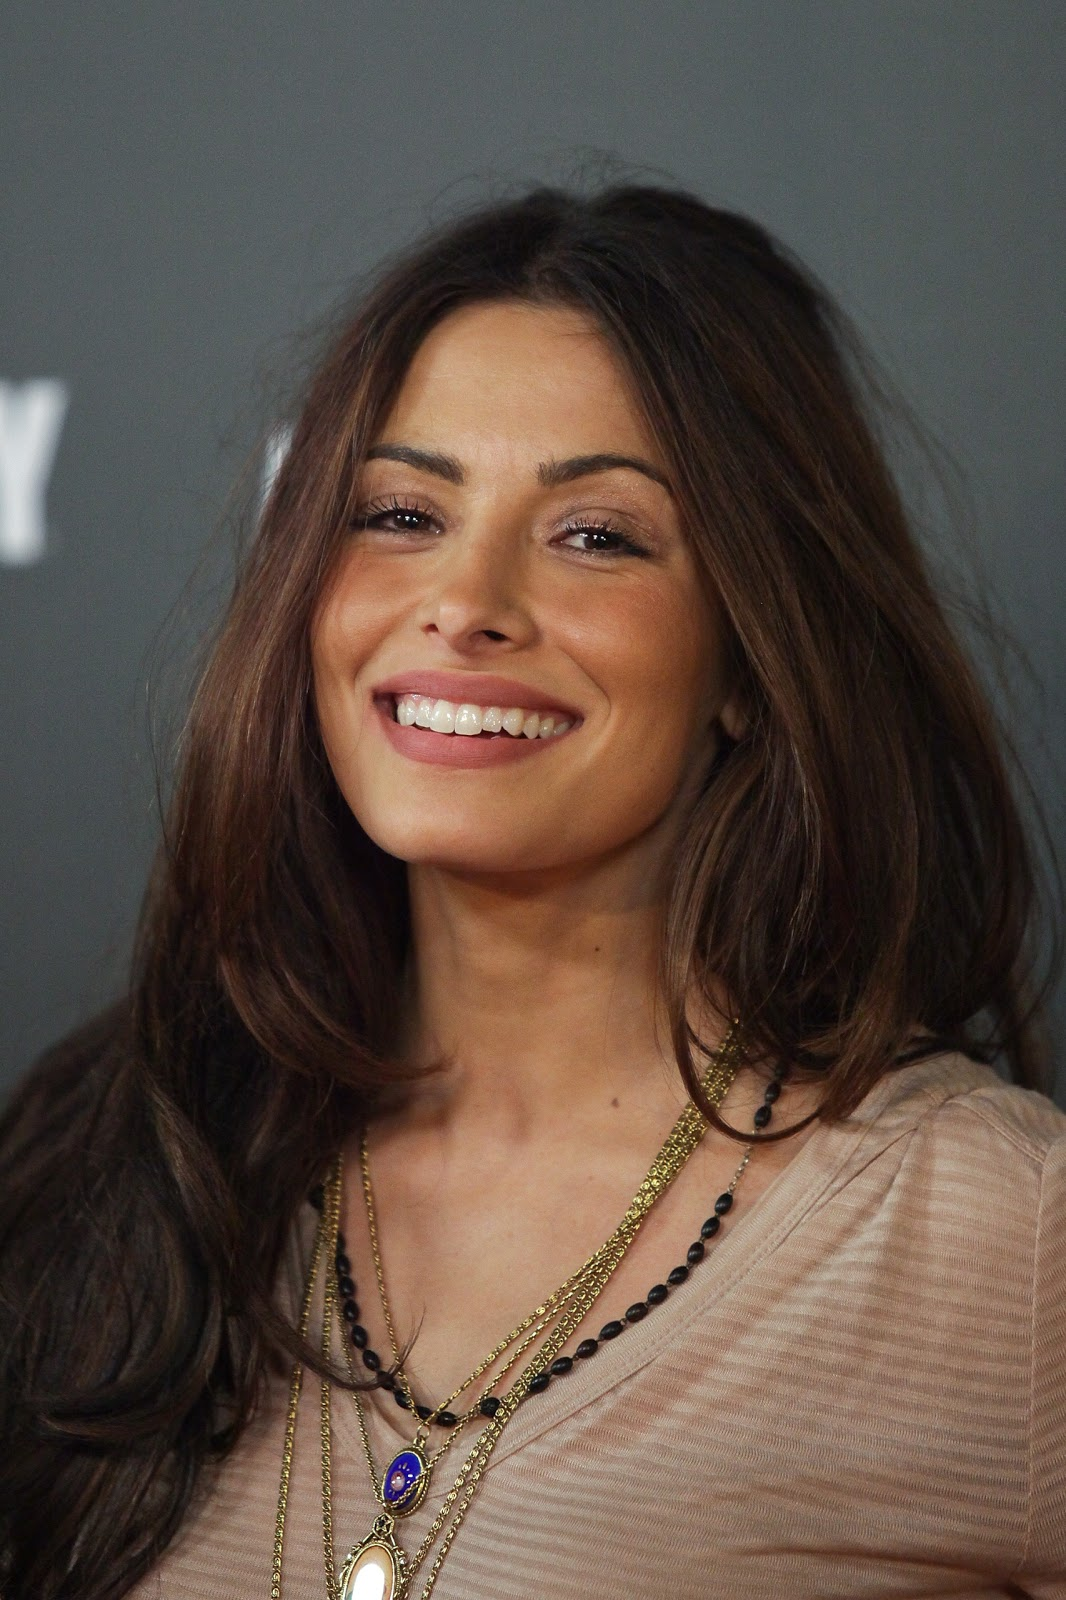 Lovely Sarah Shahi Posing At An Event Simple But The Wow Factor Is A